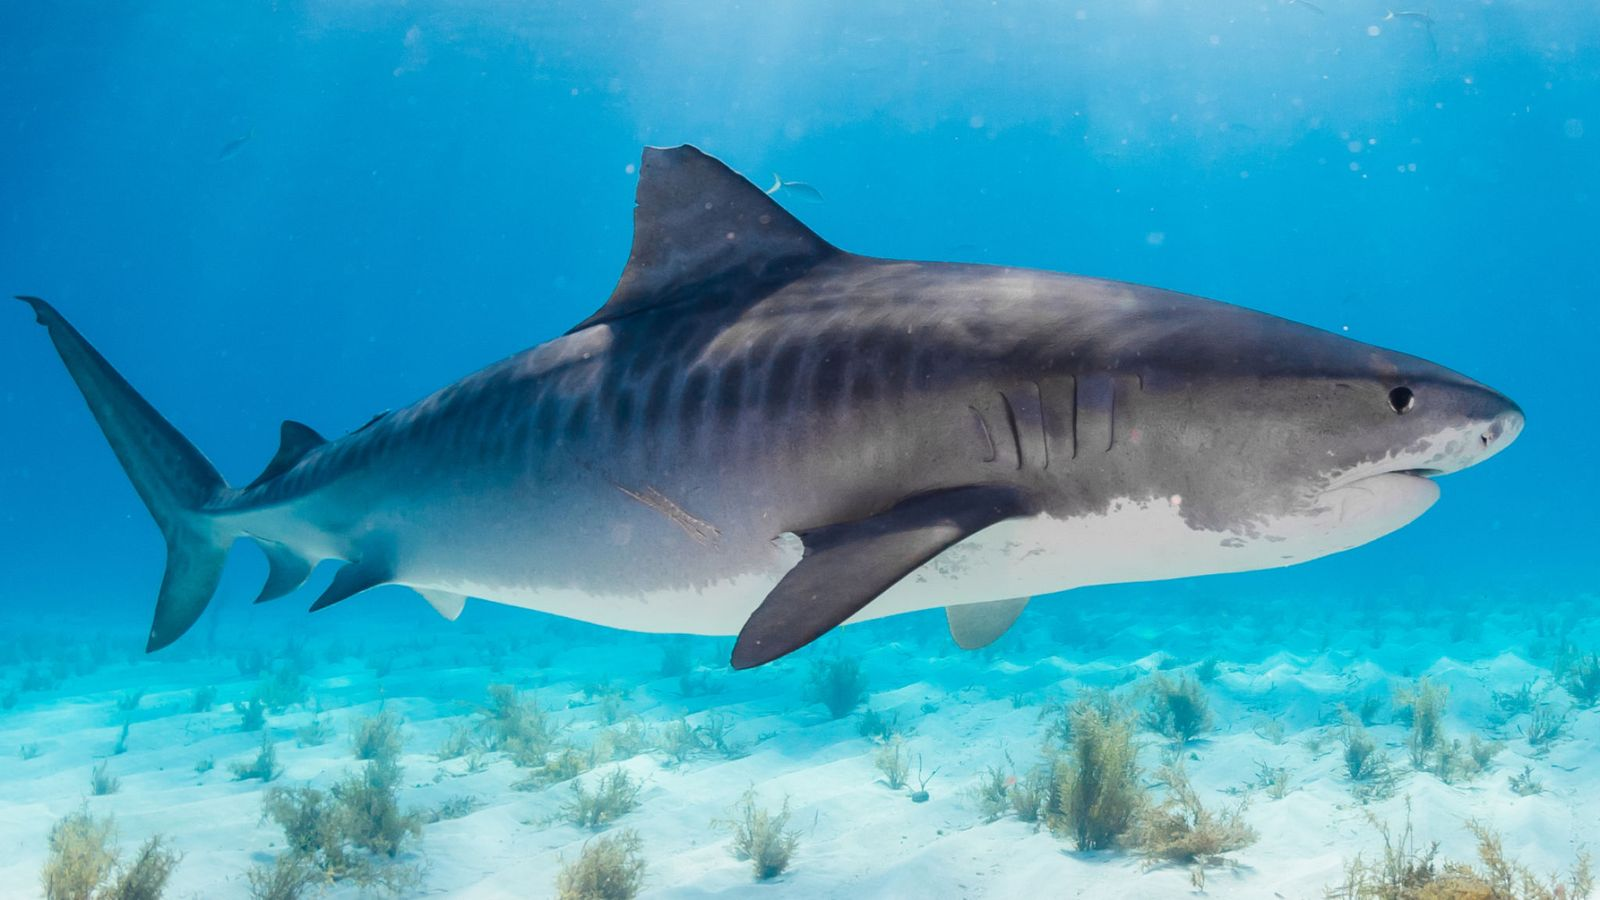 Missing tourist's hand found in shark's stomach